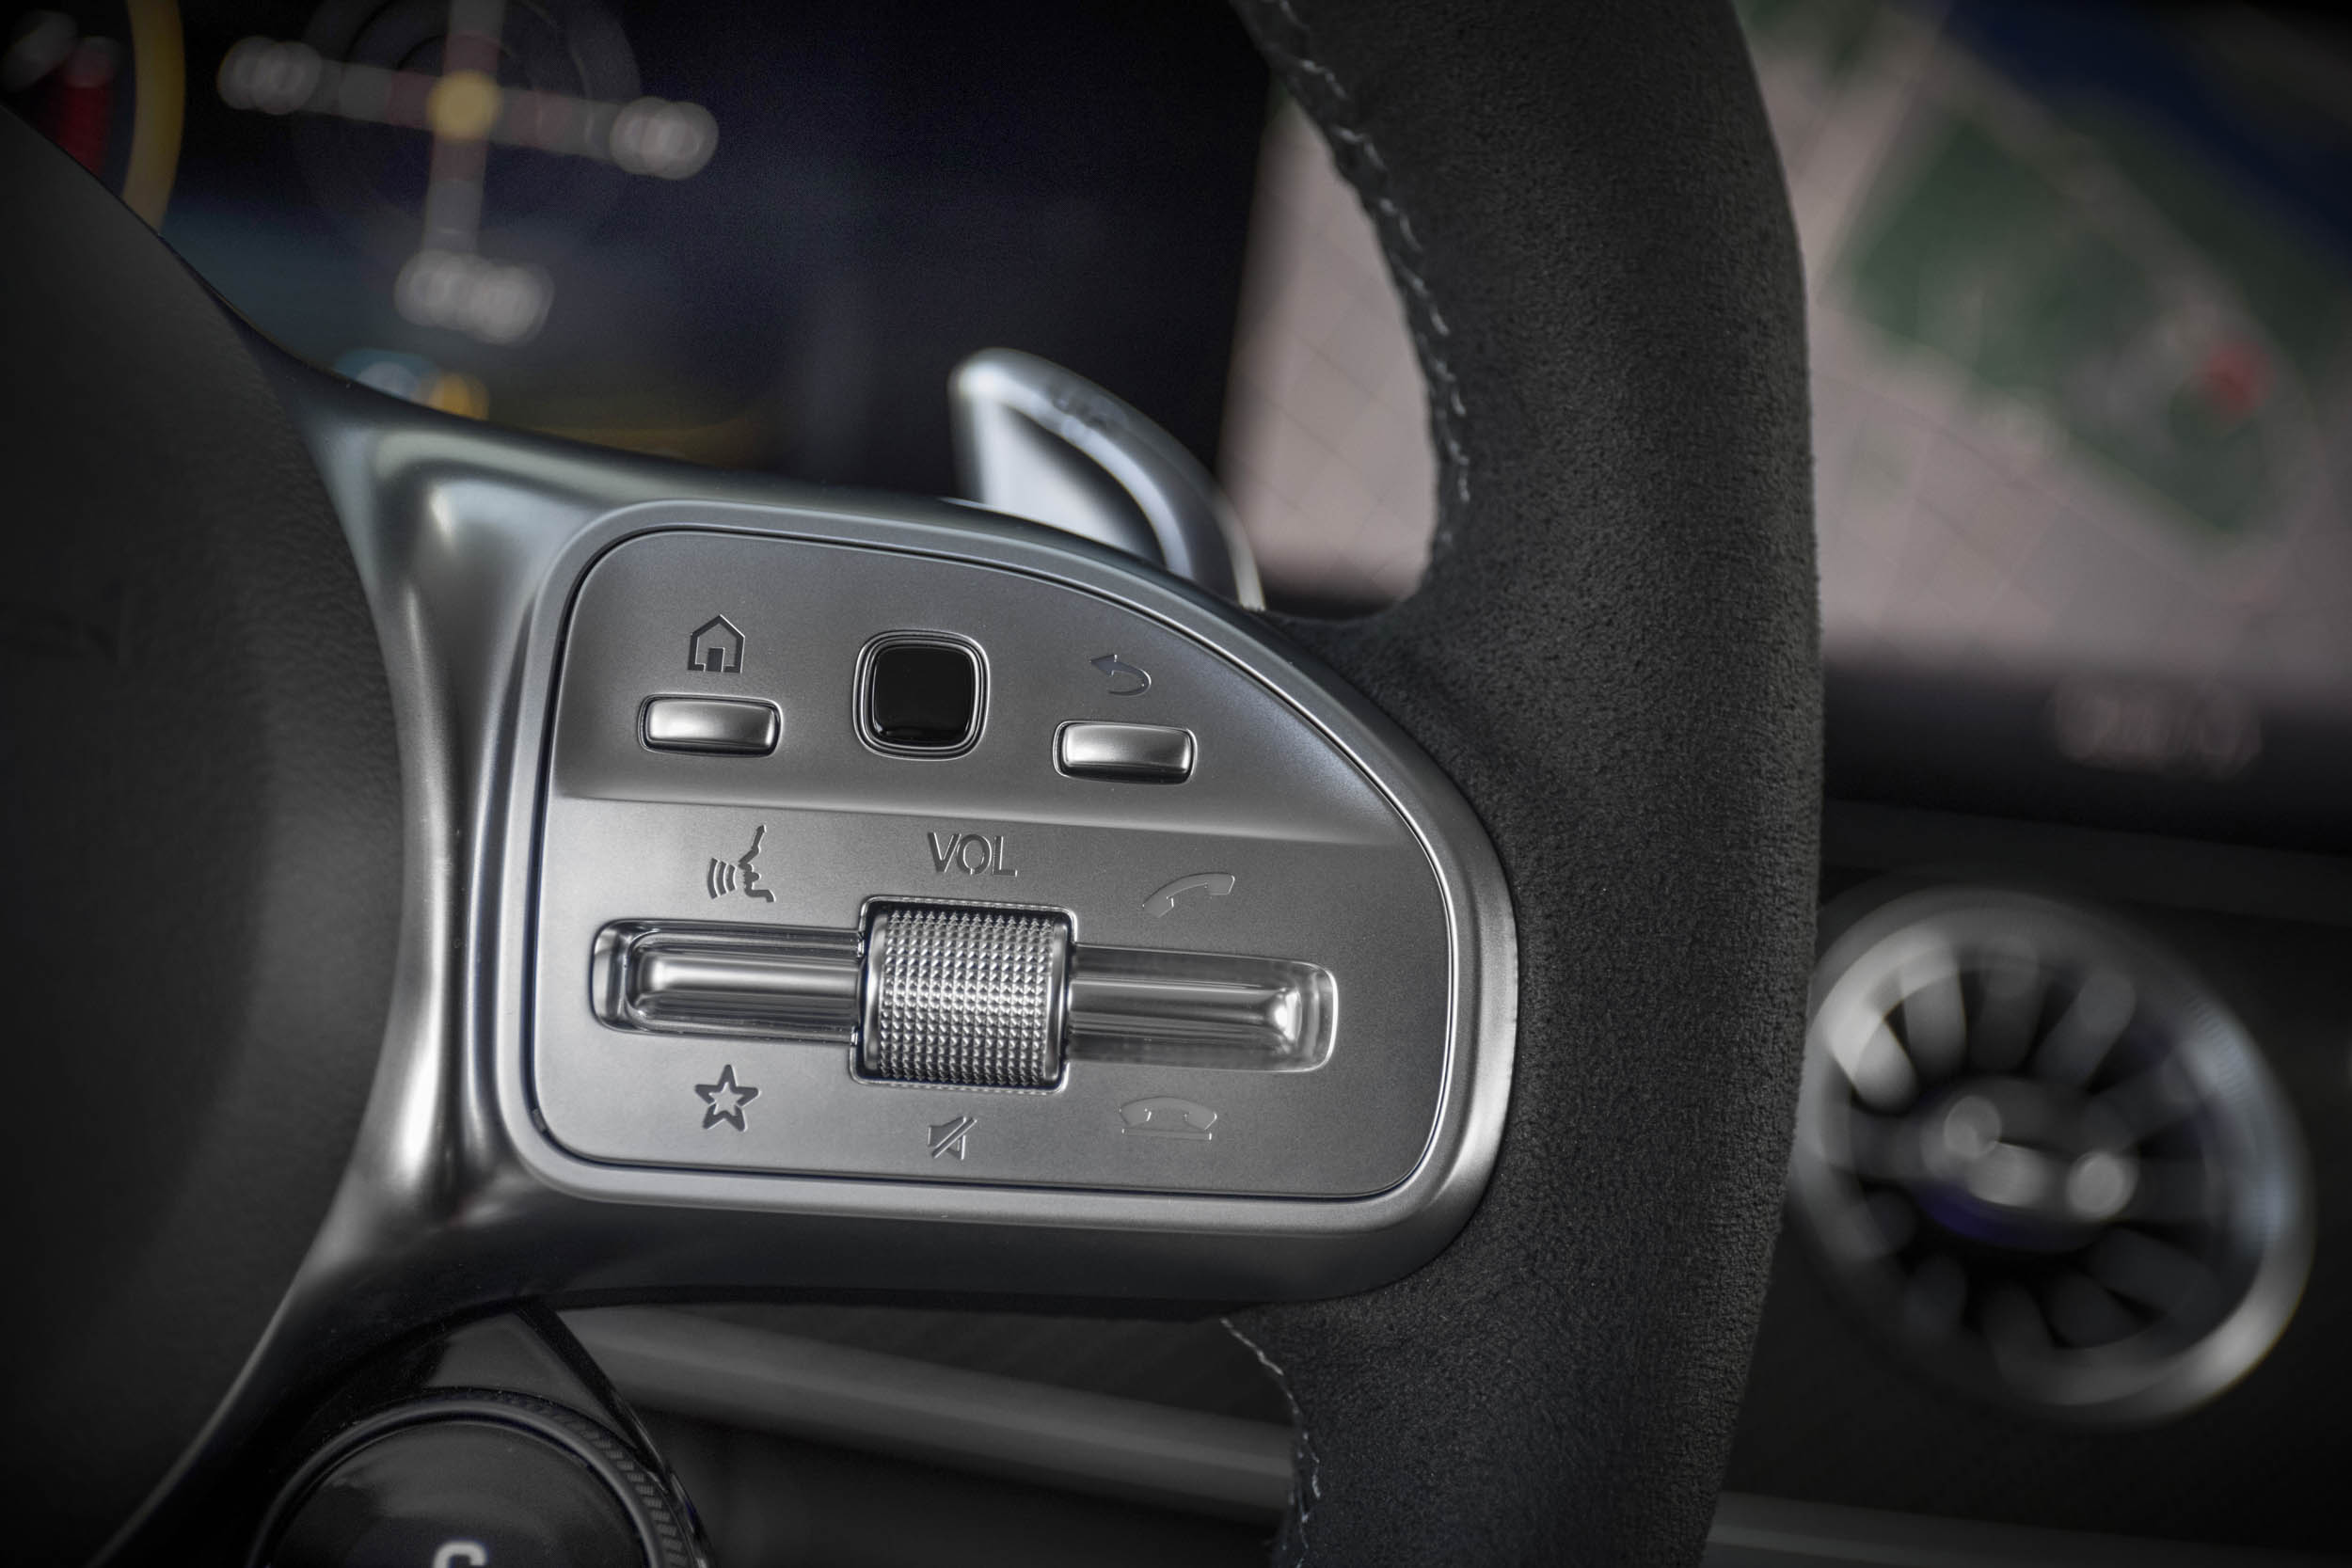 Mercedes-AMG GT 63 S steering wheel buttons